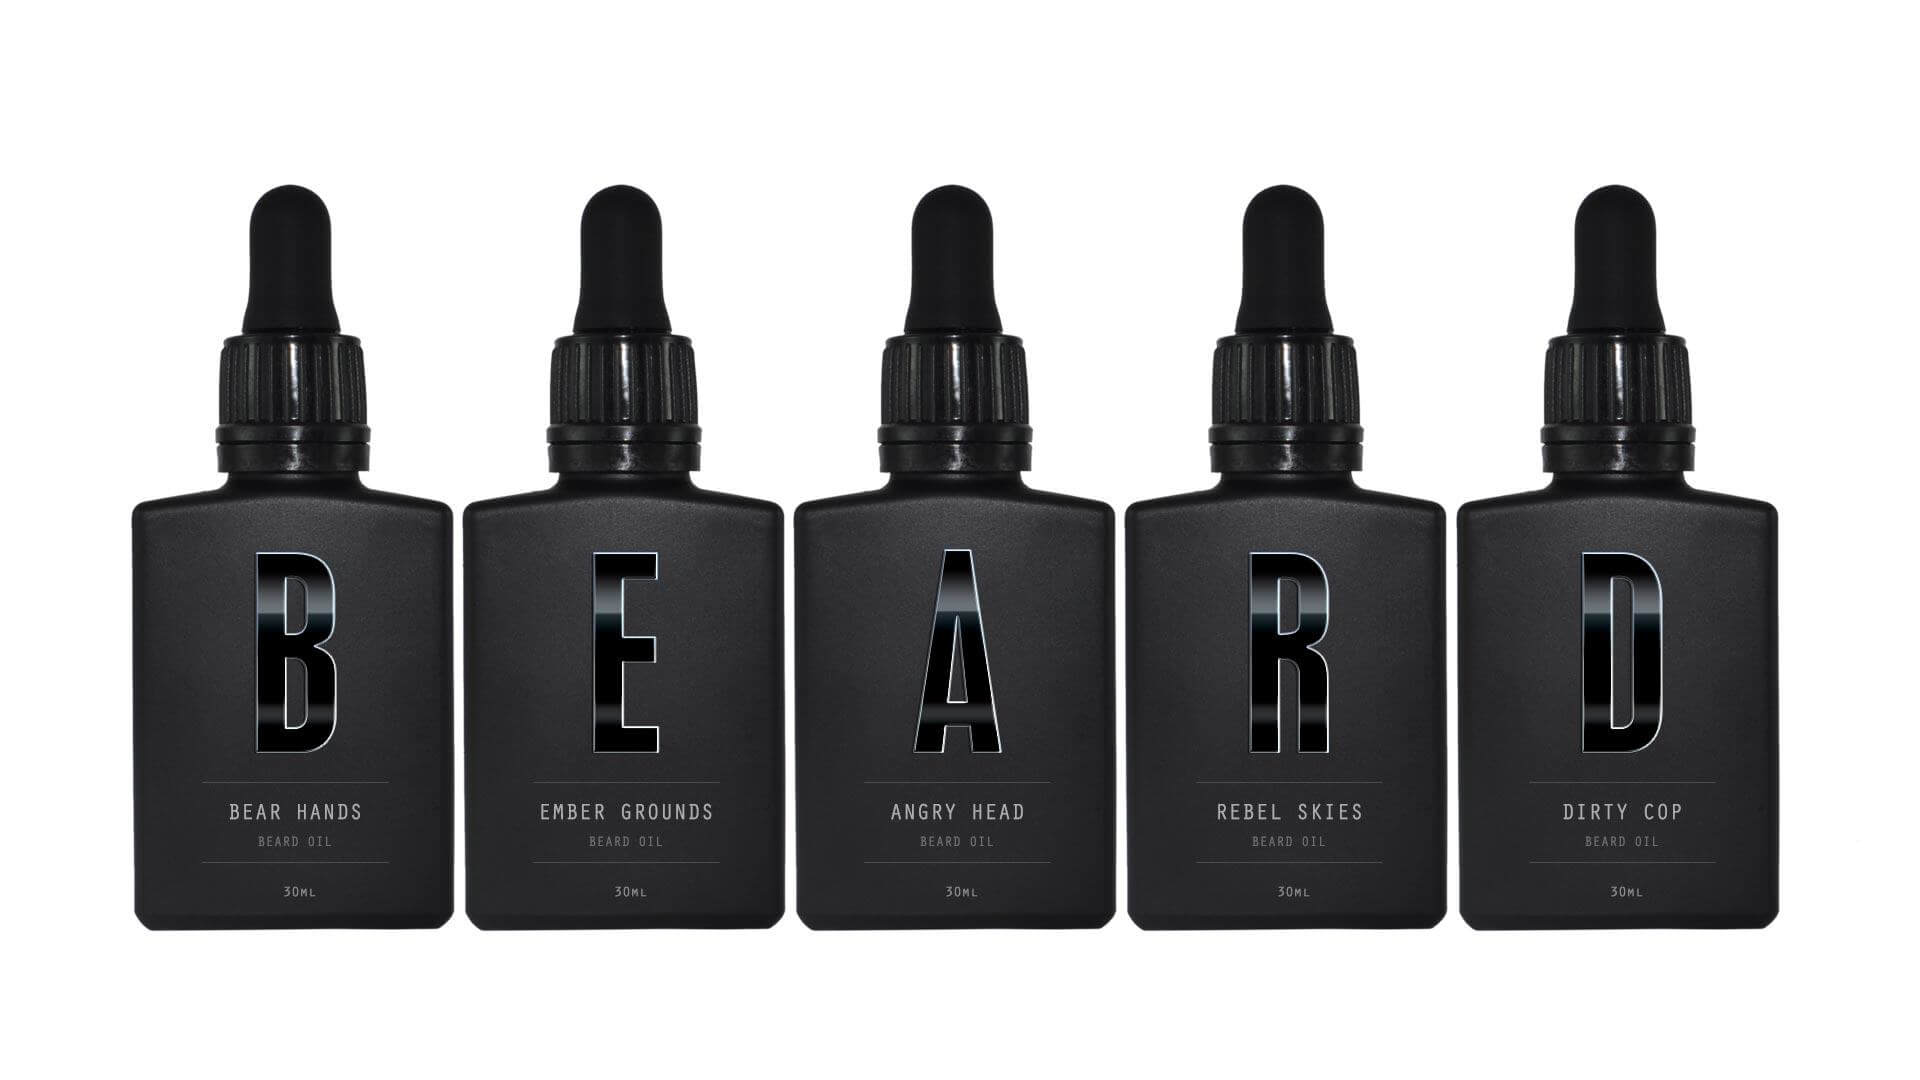 All five Beardifulman standard beard oils in a line spelling out BEARD